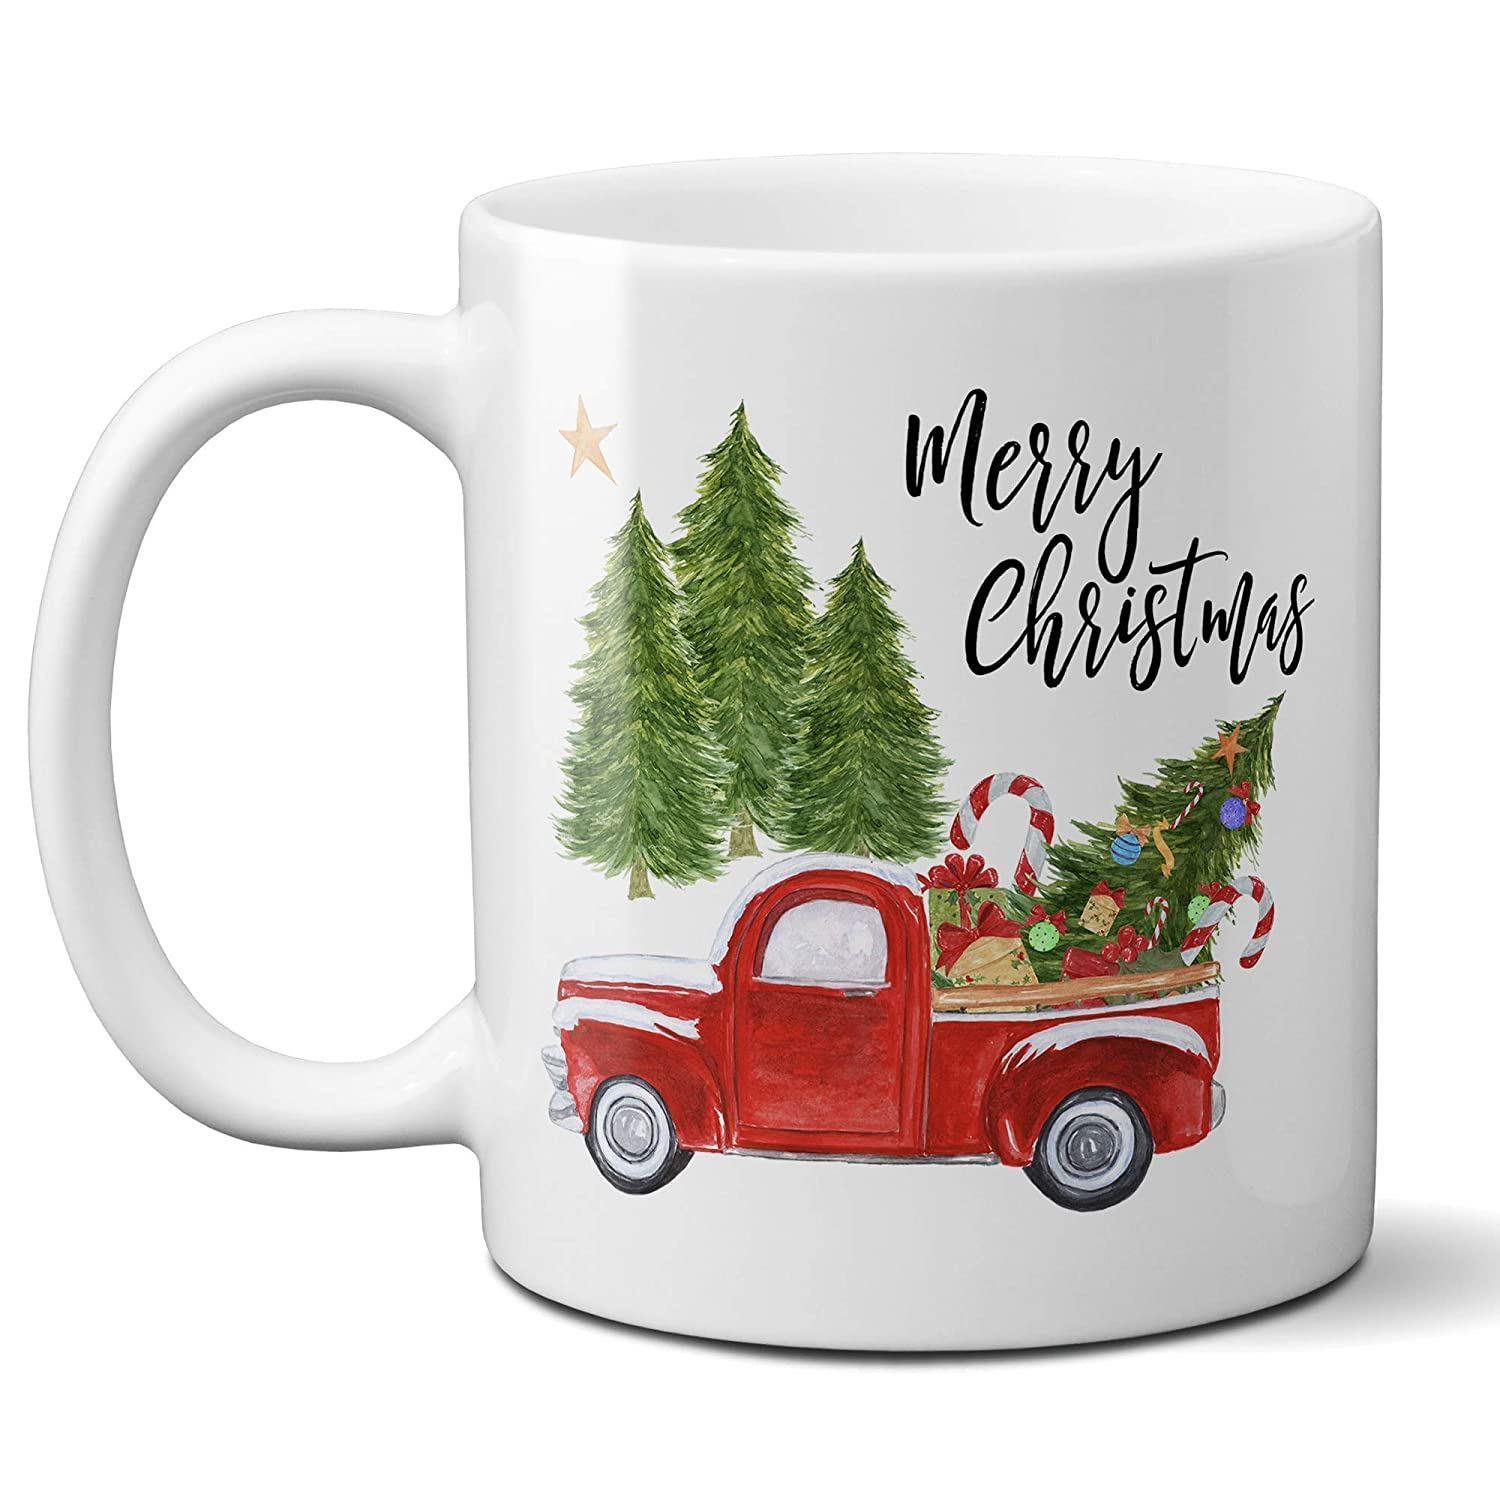 Amazon Com Merry Christmas Coffee Mug With Vintage Red Truck And Christmas Tree Ceramic Cup 11 Ounce Or 15 Ounce Handmade